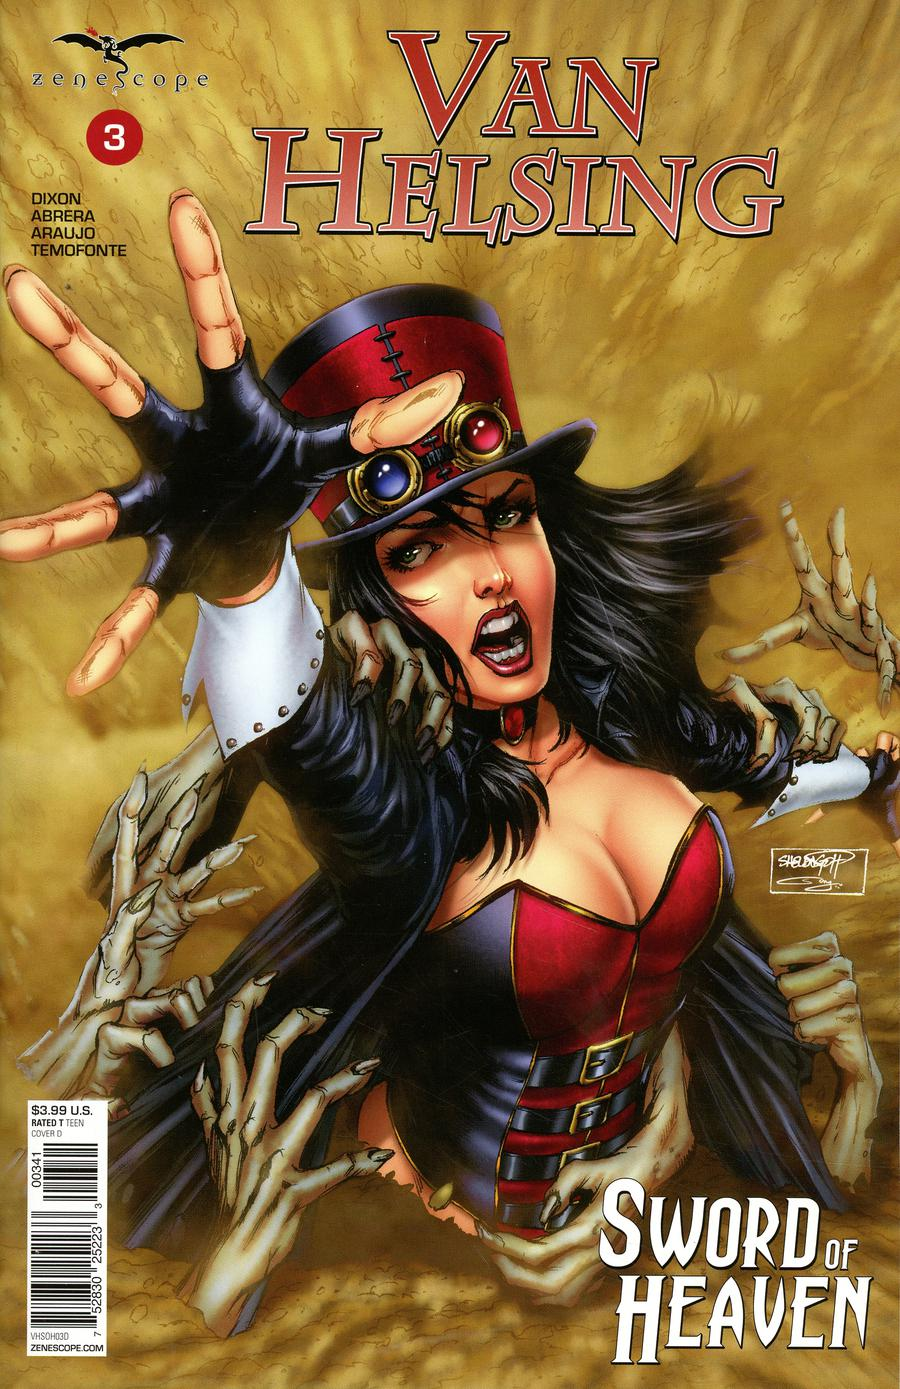 Grimm Fairy Tales Presents Van Helsing Sword Of Heaven #3 Cover D Sheldon Goh